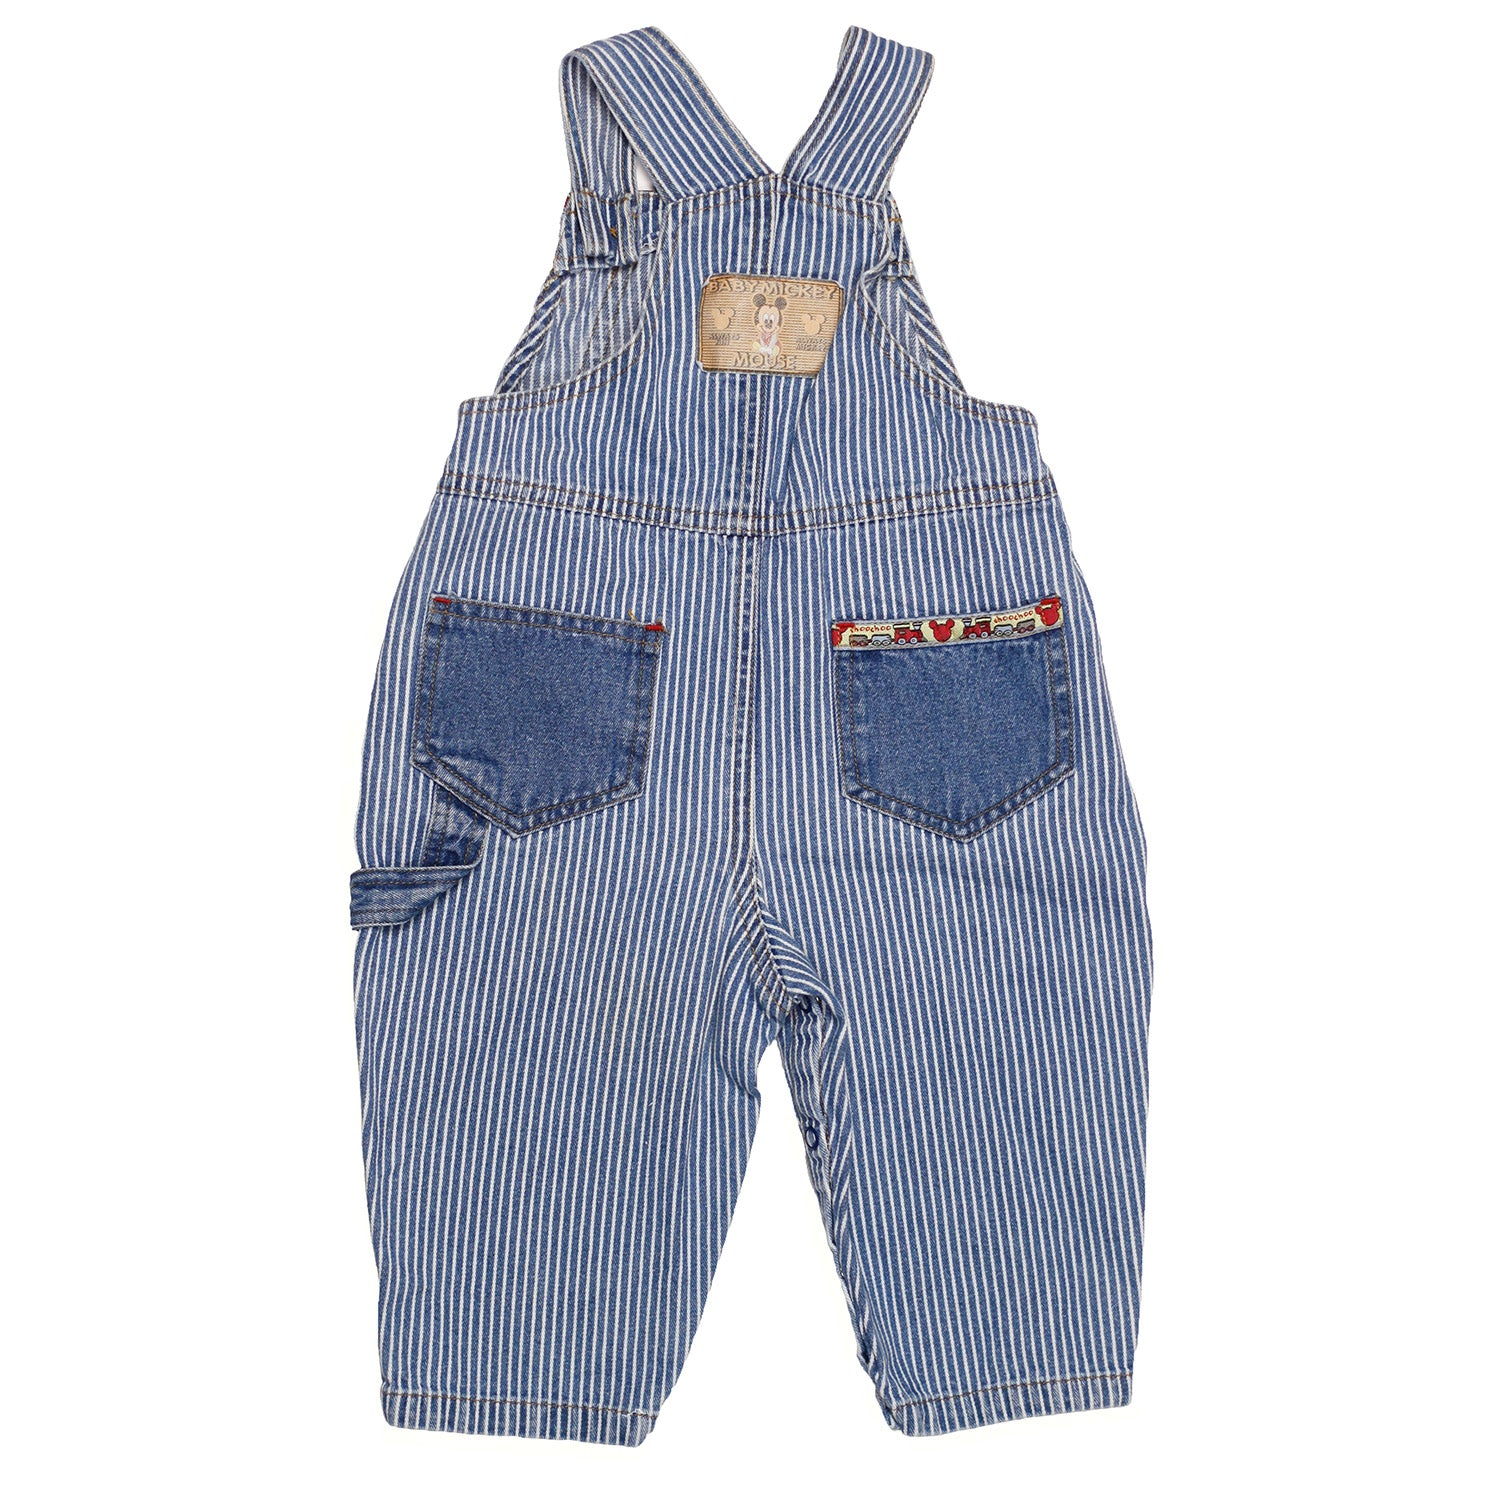 VTG Baby Mickey striped overalls size 12m